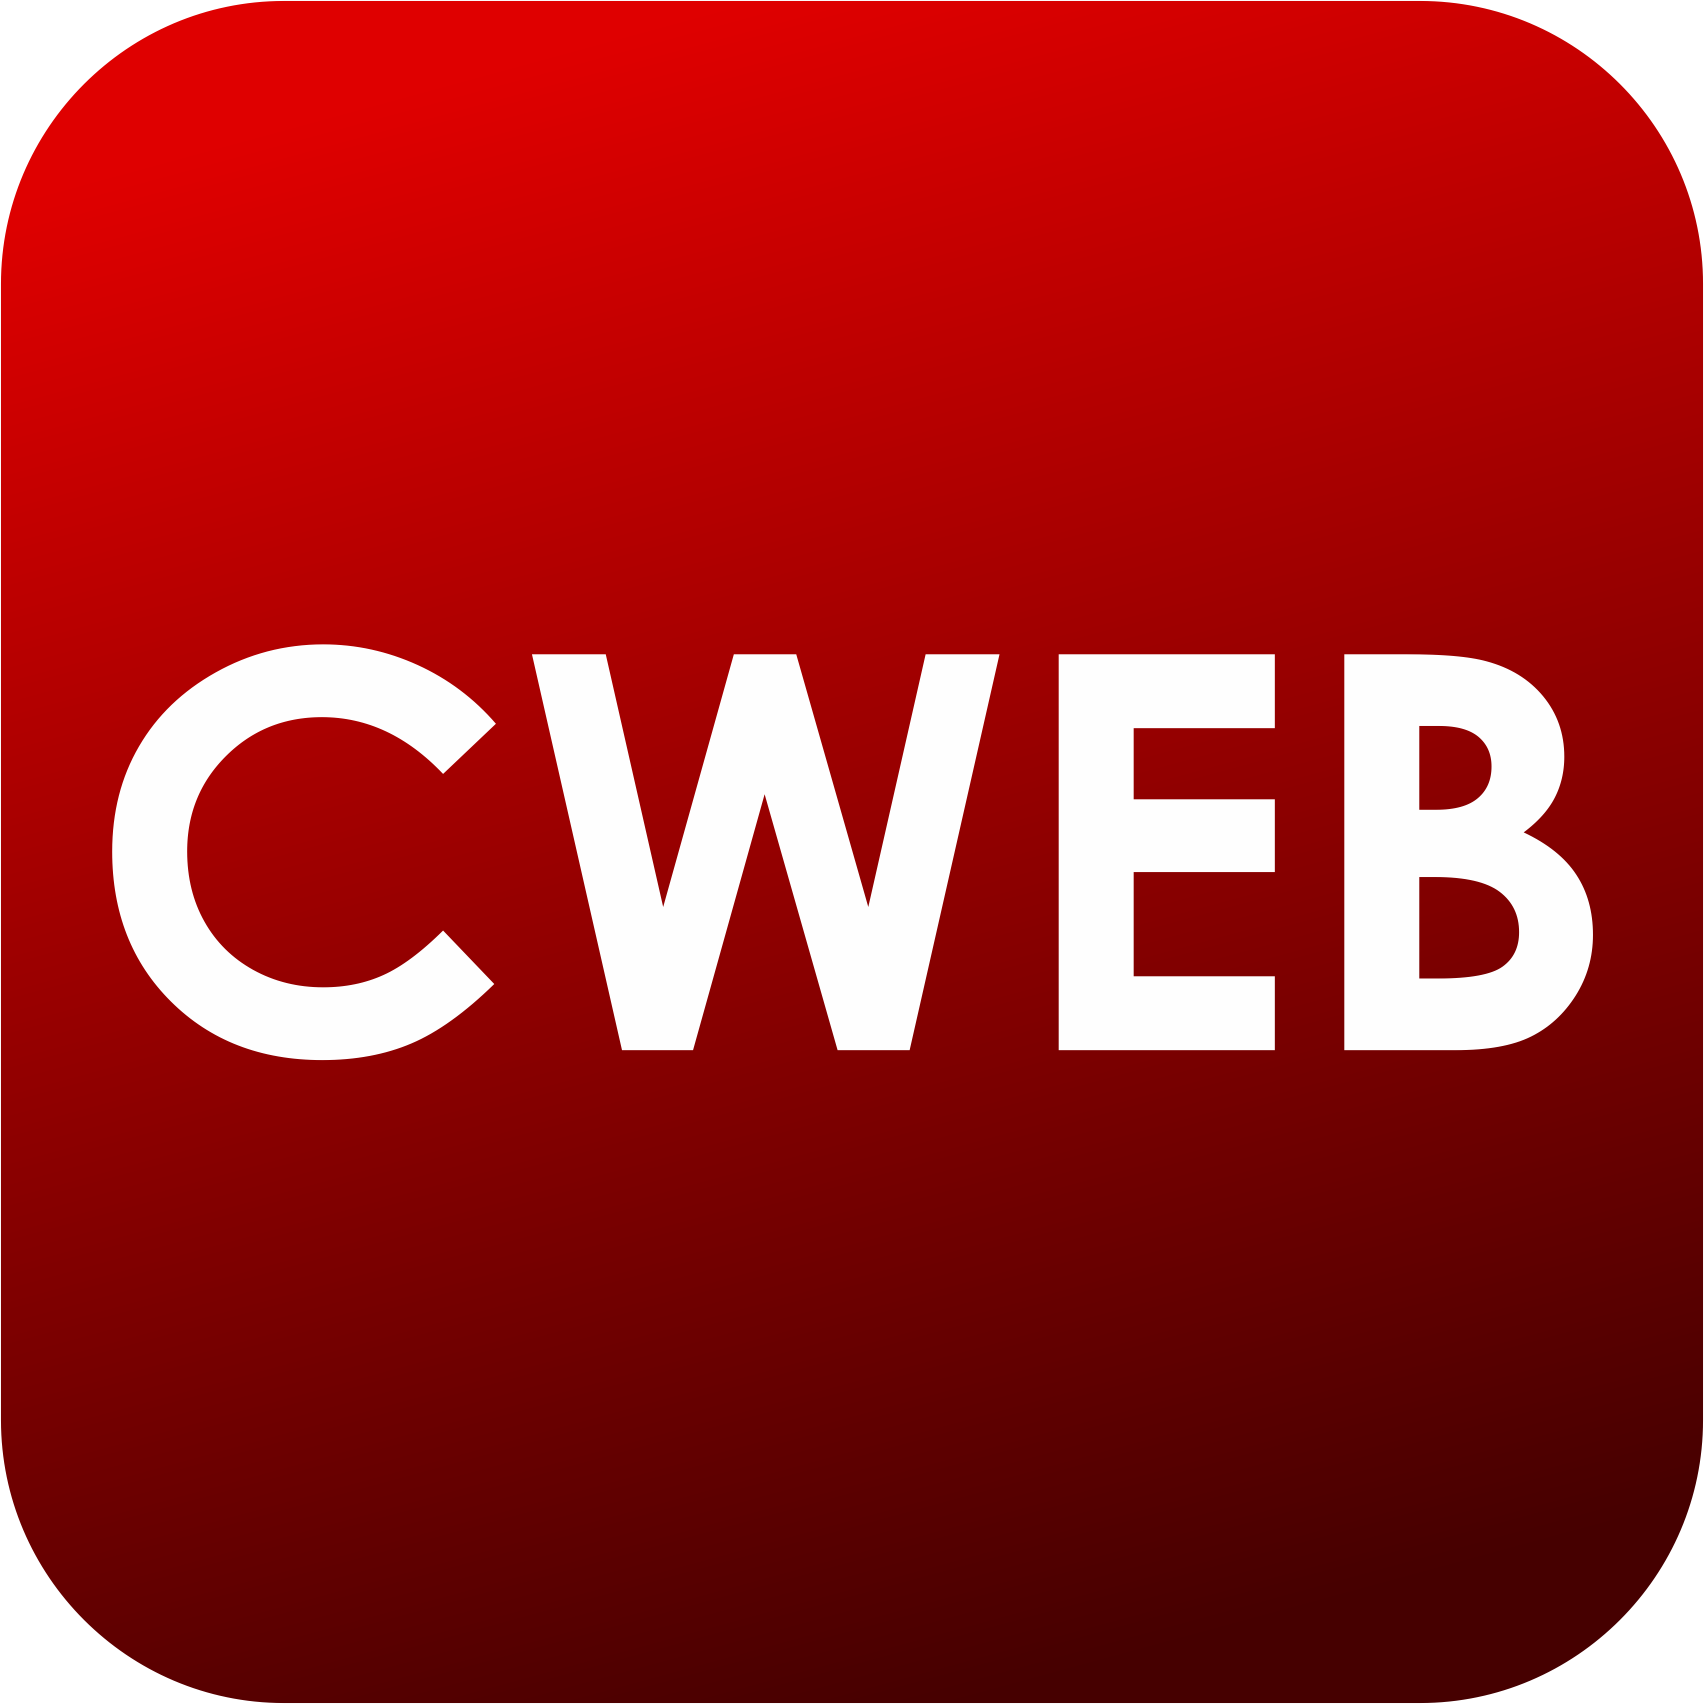 CWEB.com - Trending News, Business , Sports, Technology, Celebrity, Cooking Recipes